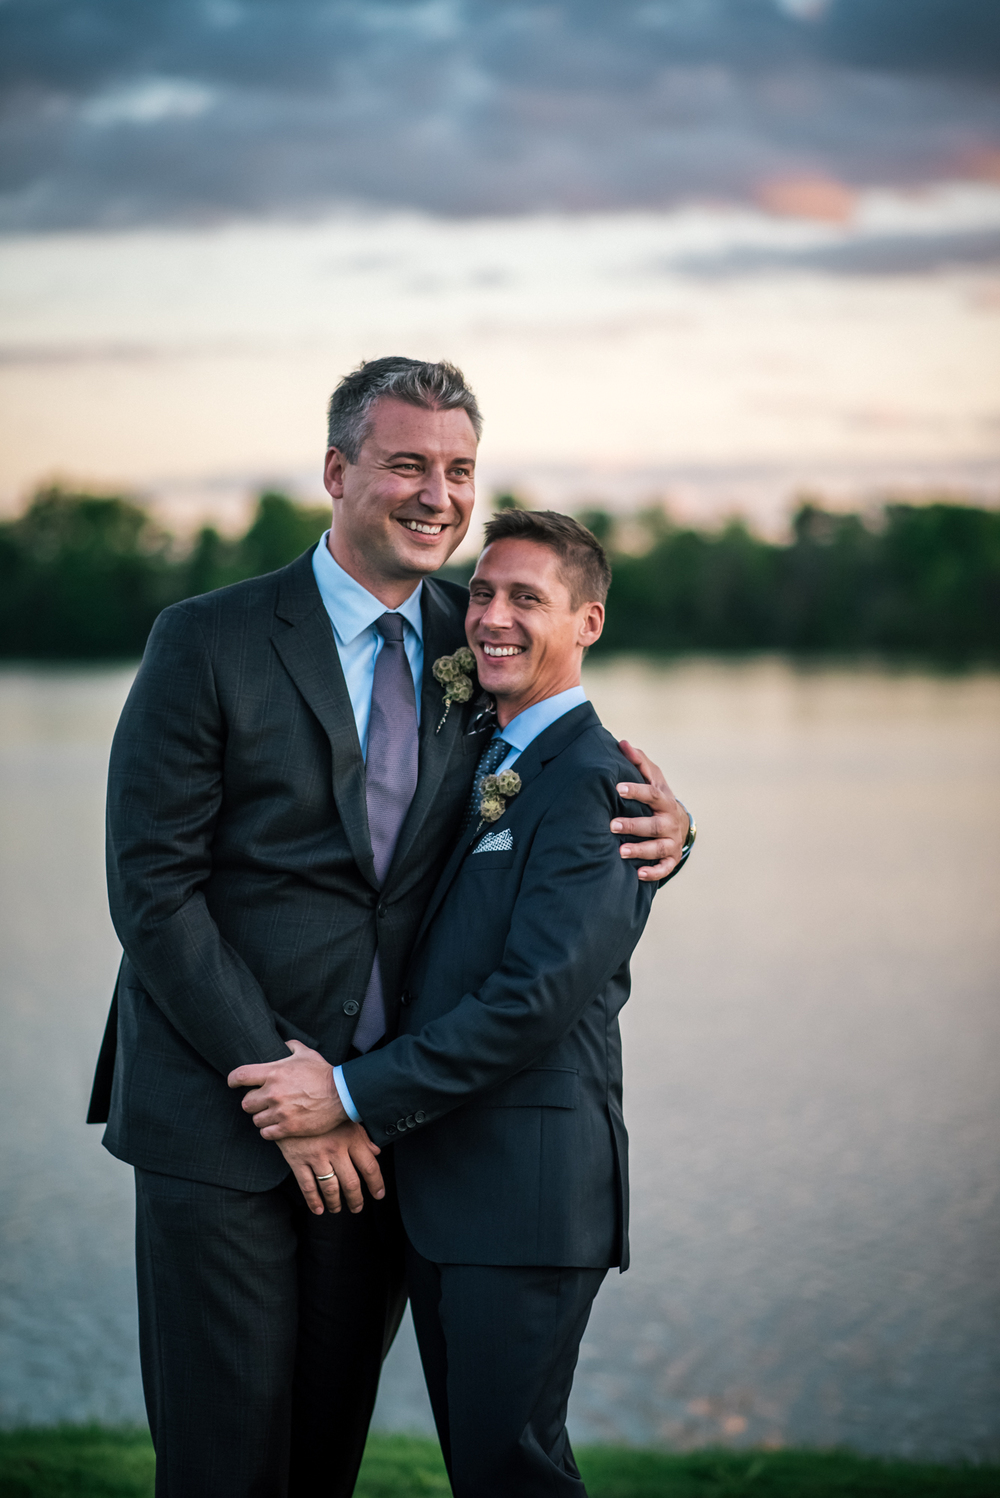 Same Sex Wedding at Lake Forest Country Club | Dale + Glenn